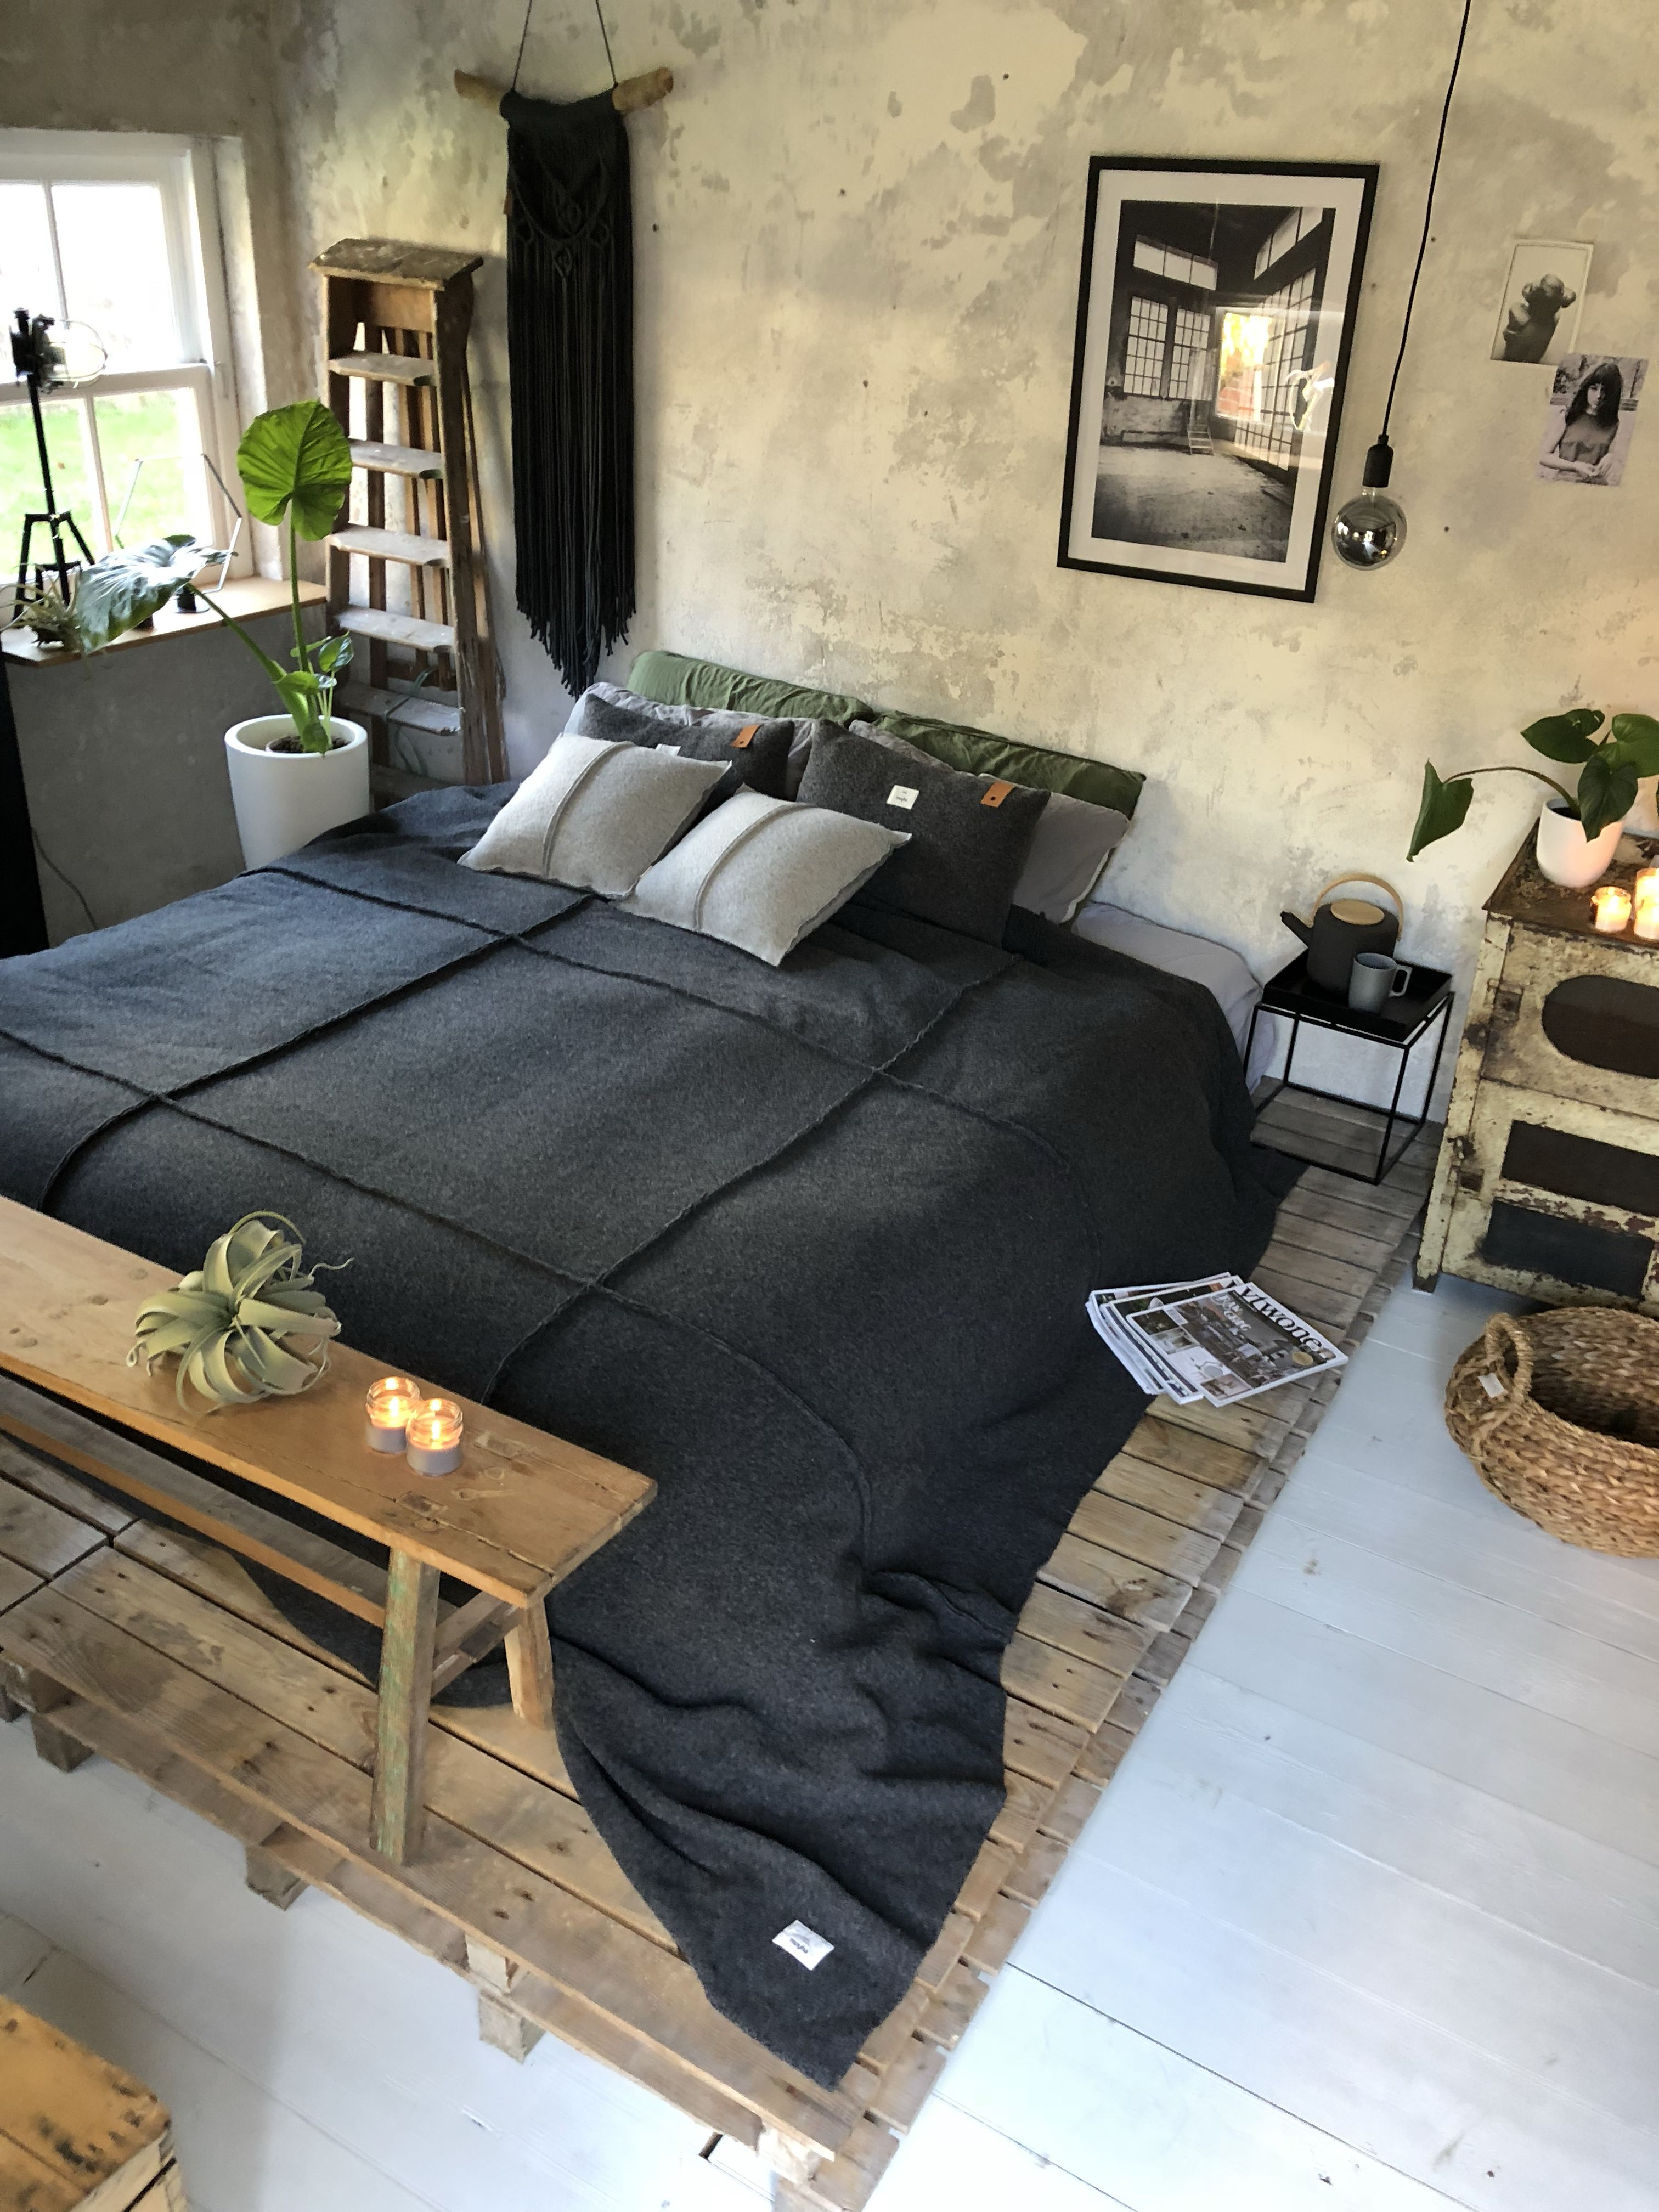 Pallet Slaapkamer Slaapkamer Wood Pallet Dark Home In 2019 Home Bedroom